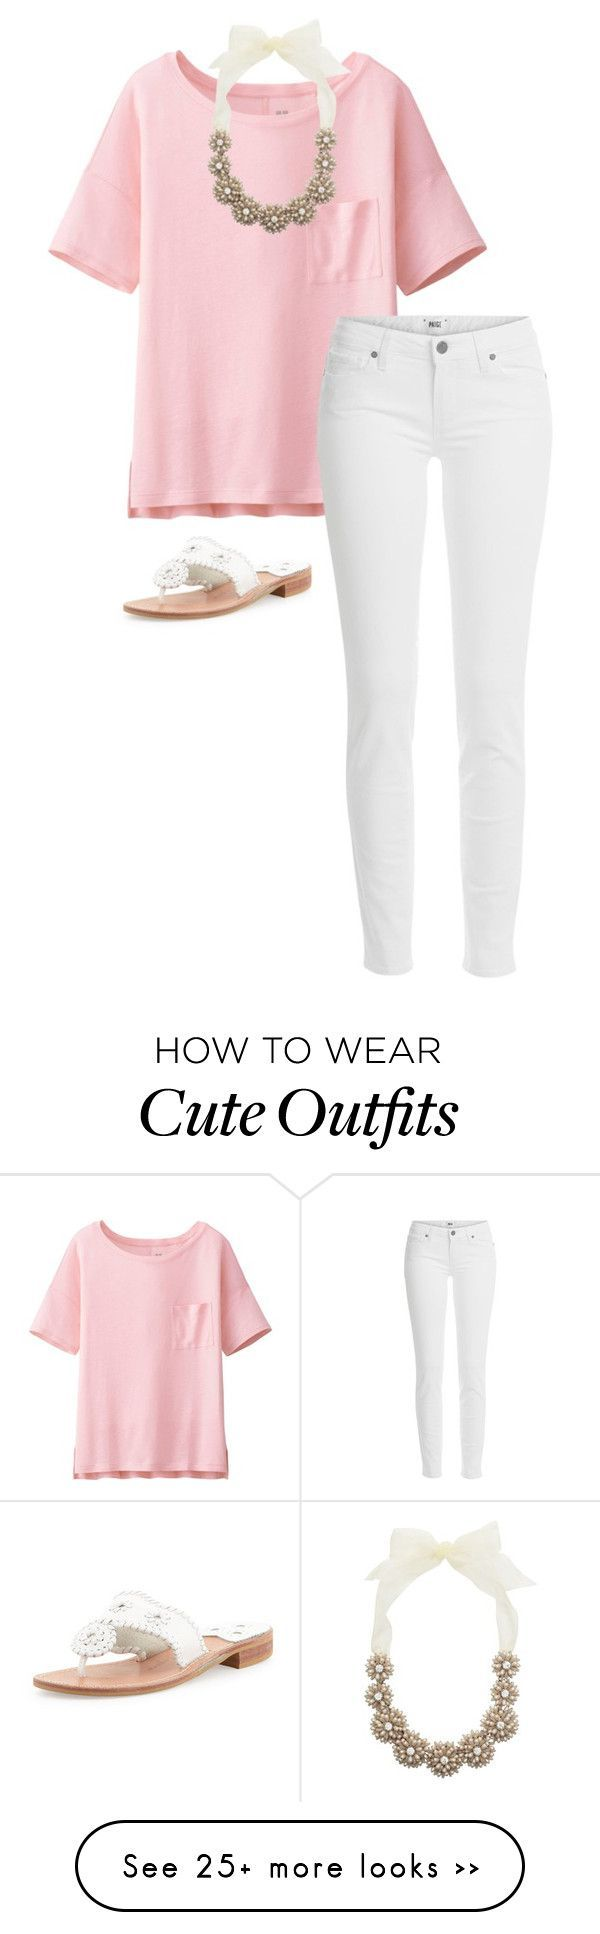 """cute outfit"" by sassy-and-southern on Polyvore featuring Uniqlo, Kate Spade, Paige Denim and Jack Rogers"